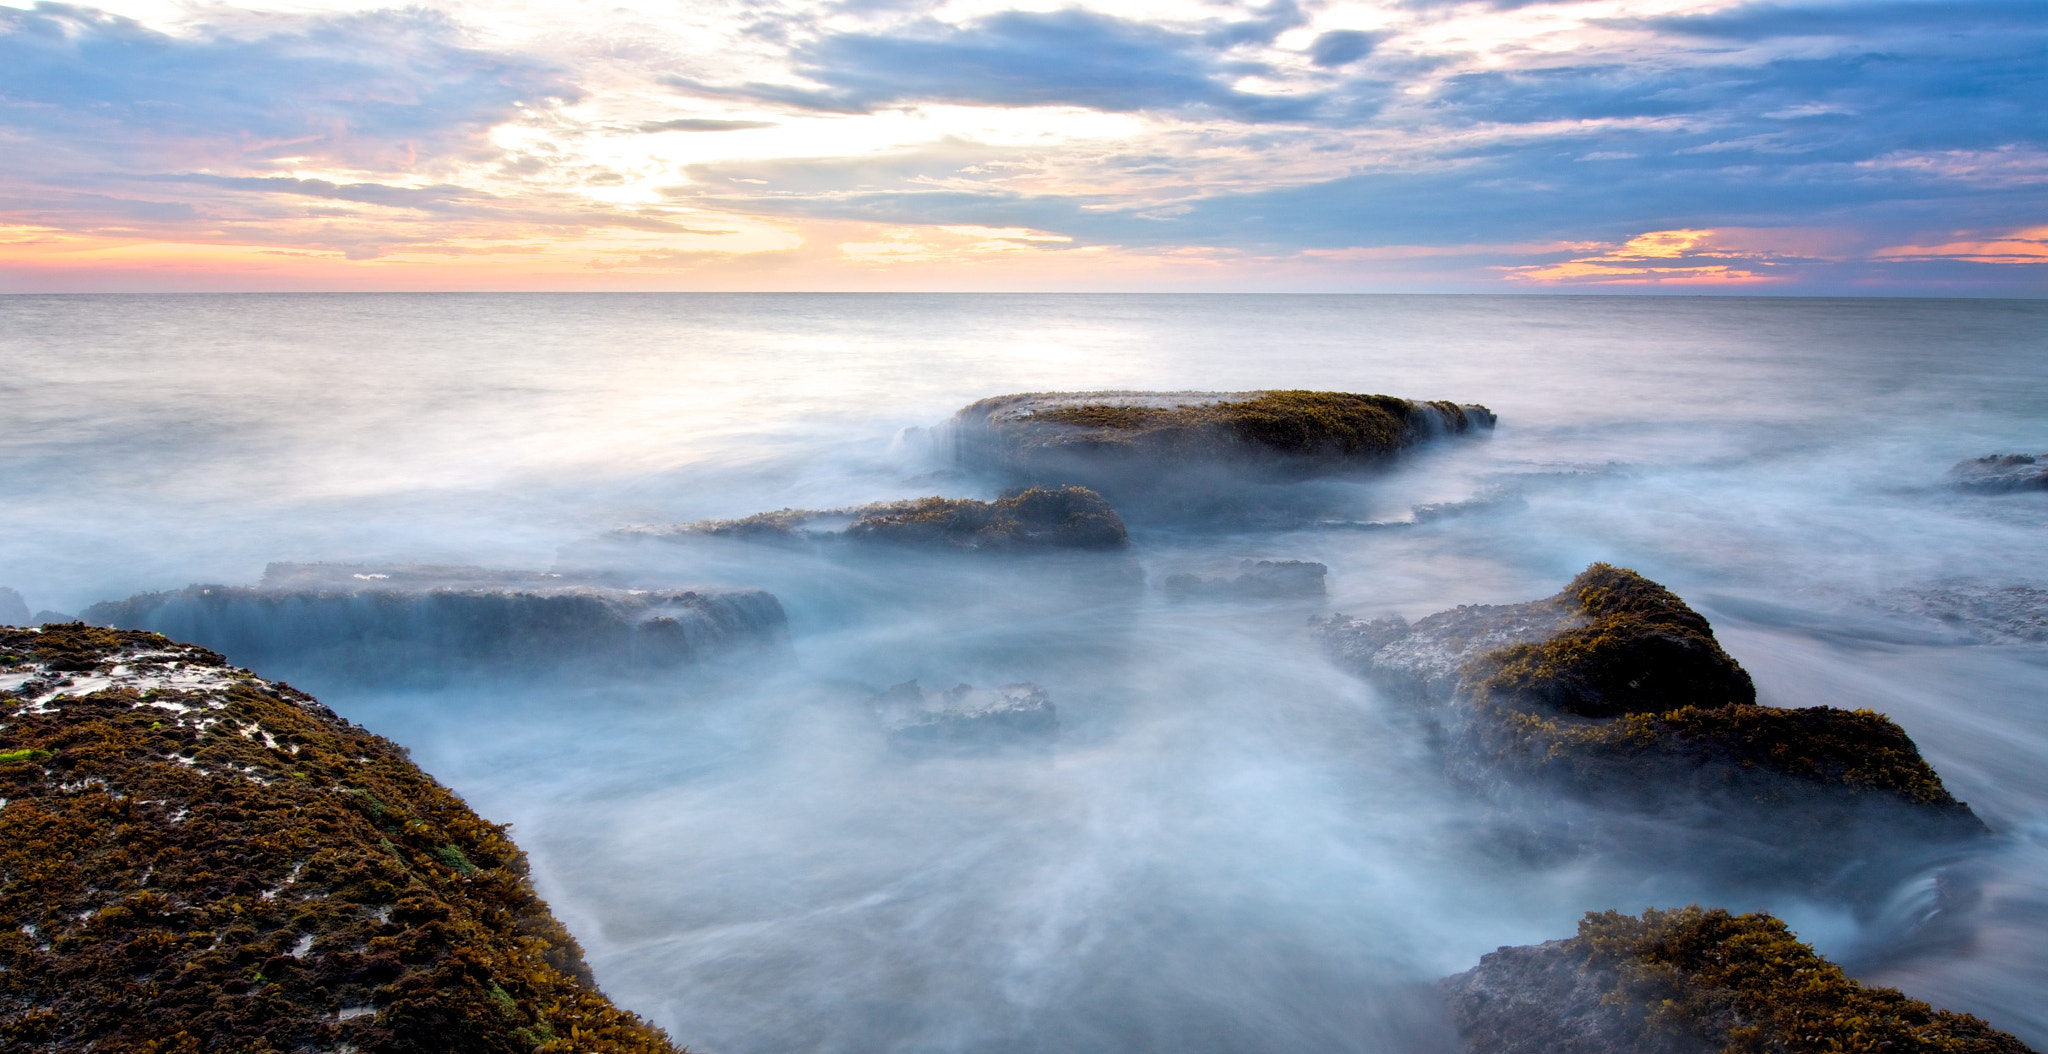 Photograph FloatinG ReeF by ViShWa  on 500px